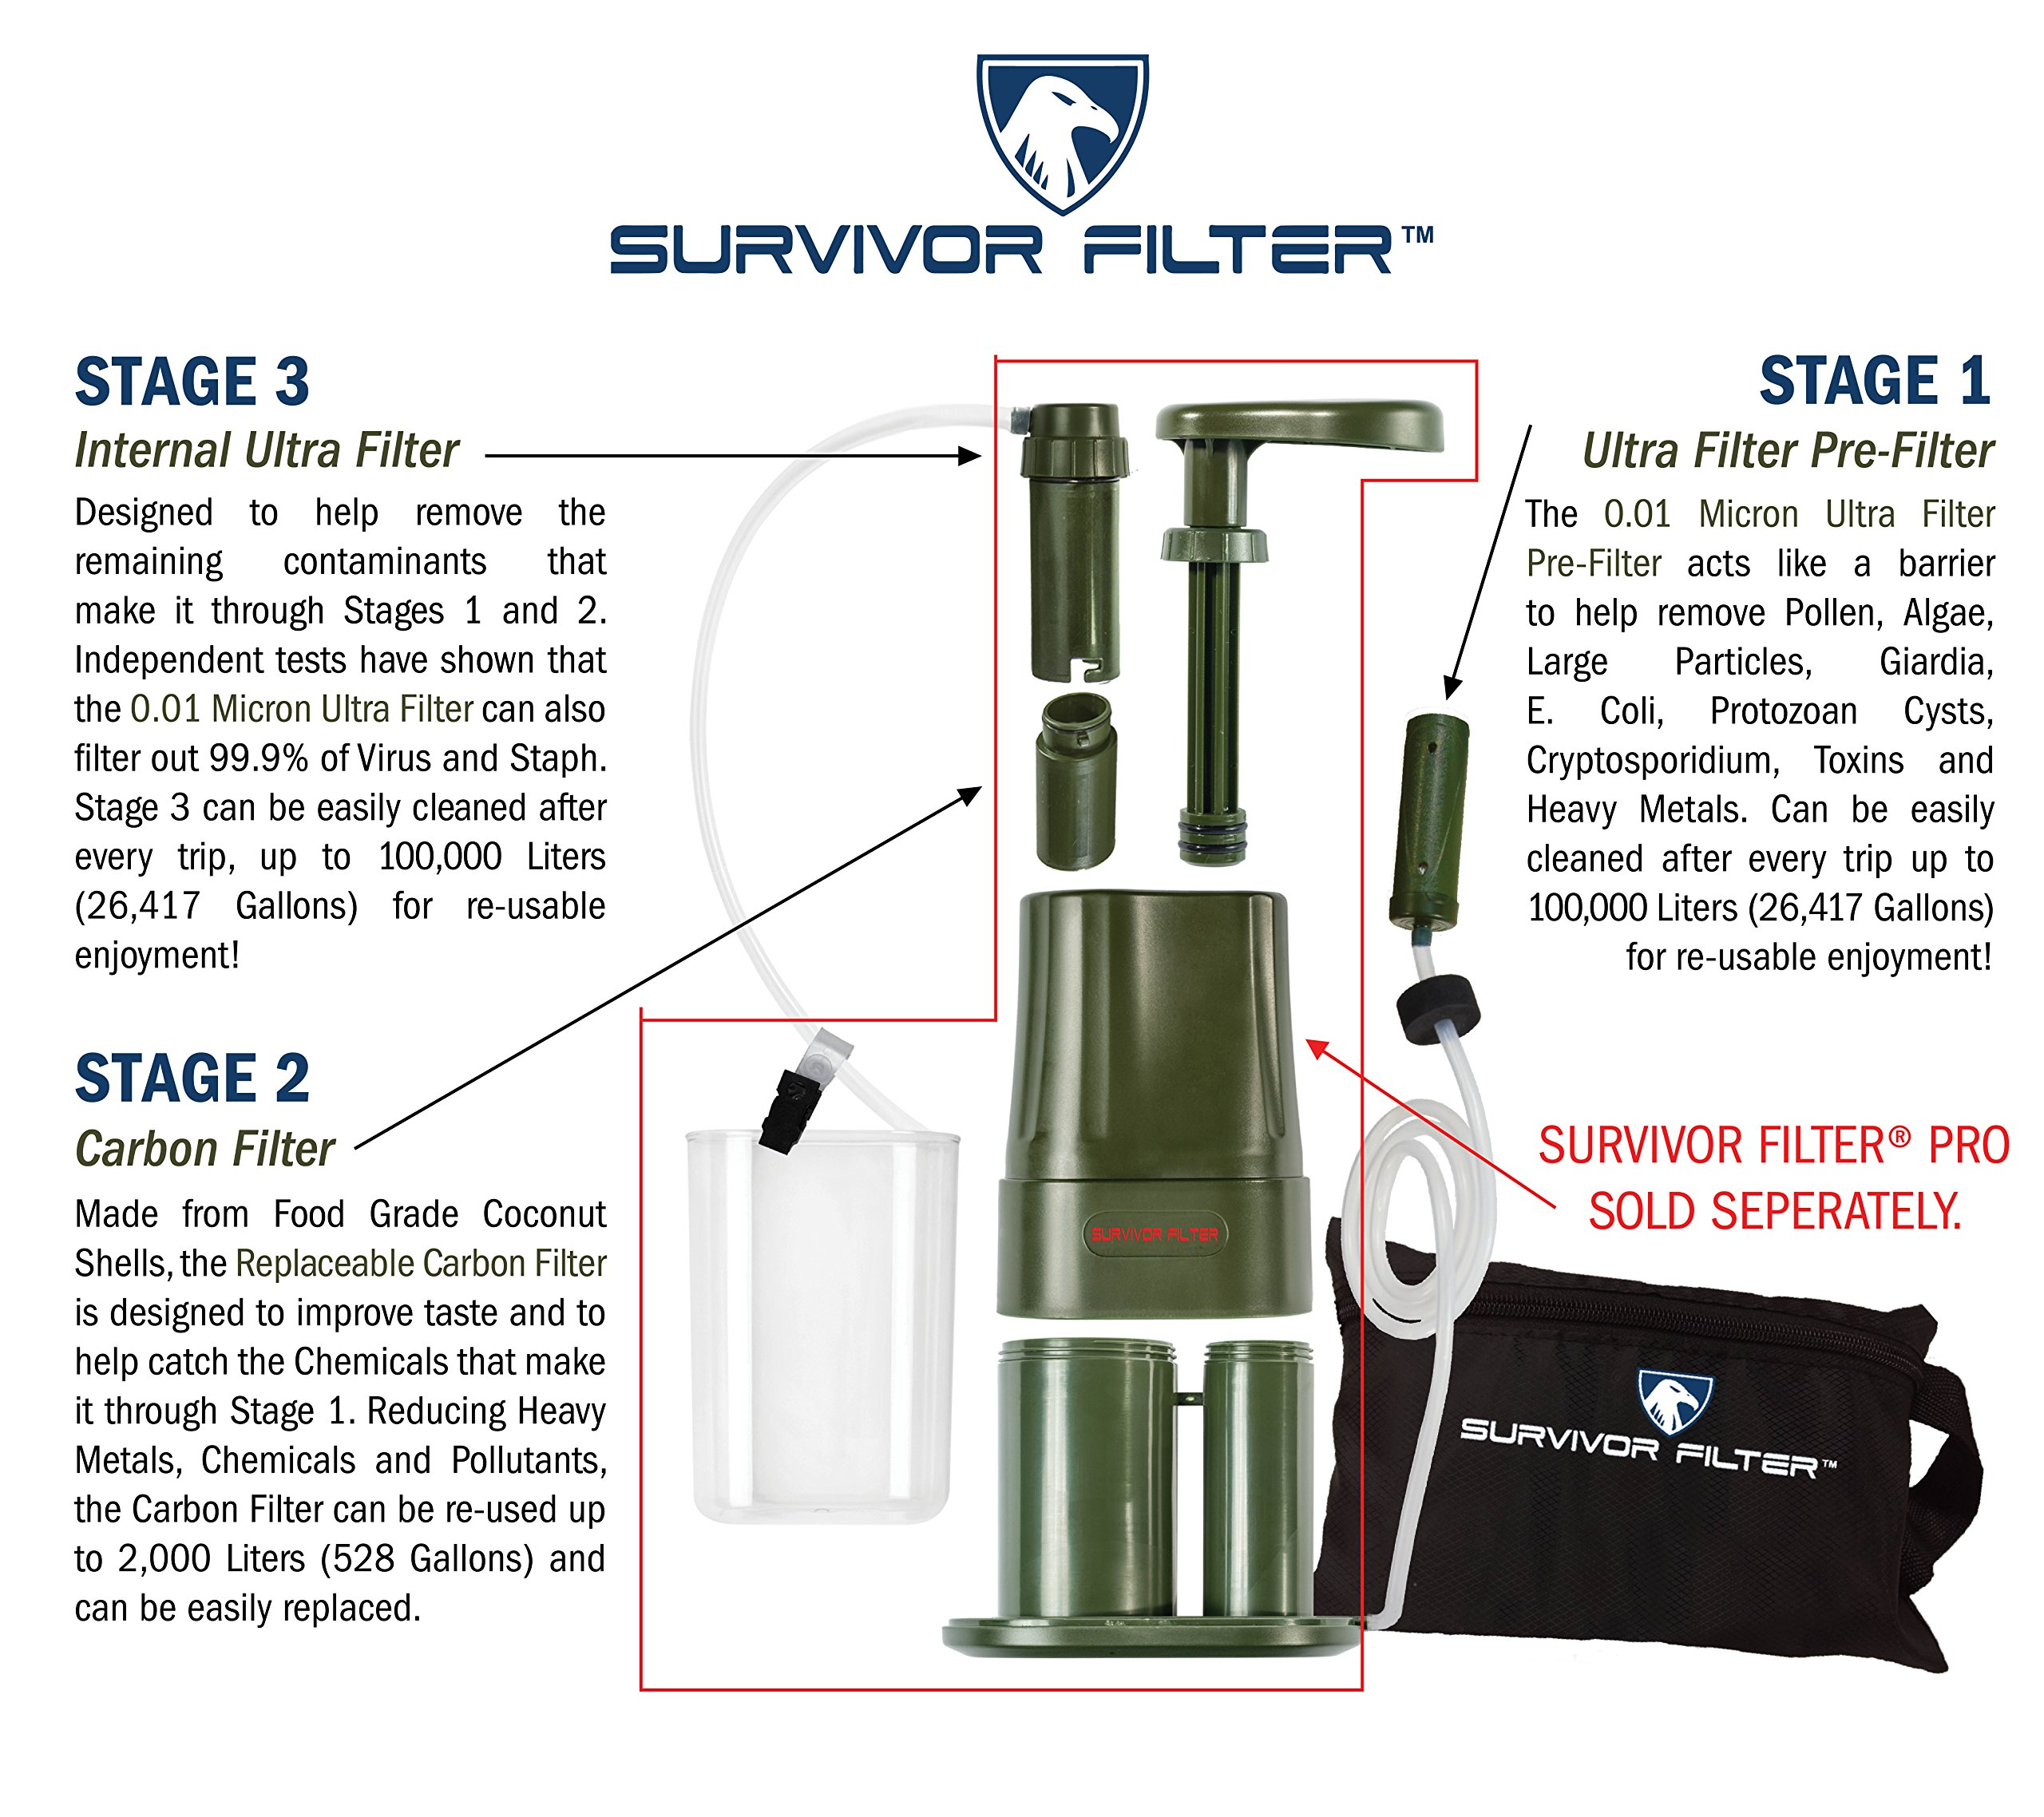 Survivor Filter Extra Replacement Filters for The PRO Portable Water Filter (Extra Pre-Filter Kit) by Survivor Filter (Image #6)